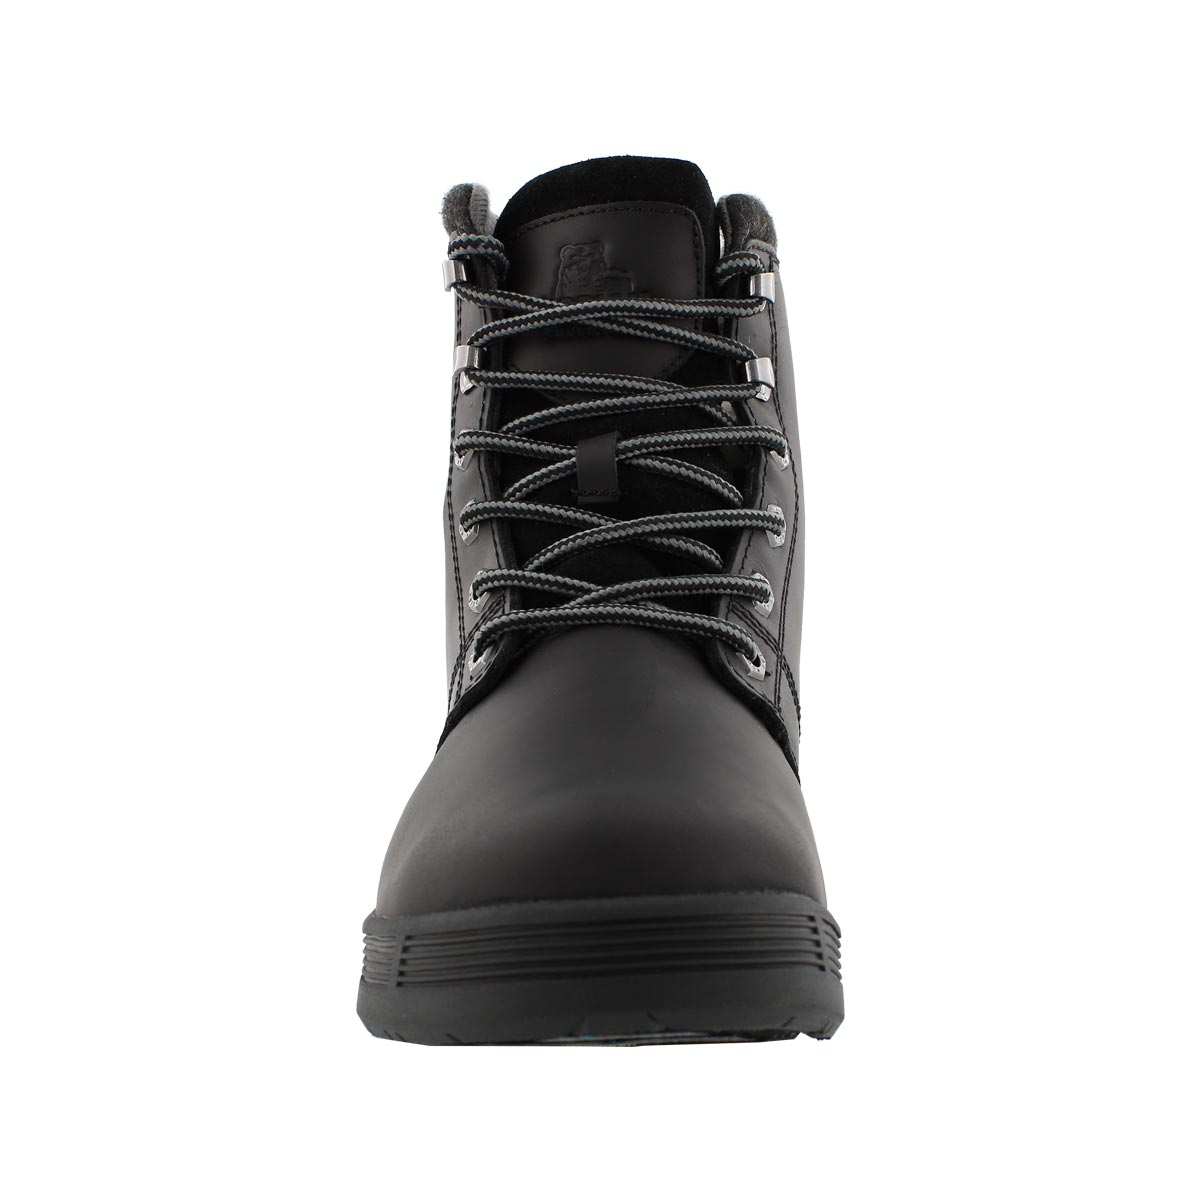 Mns Rhode II blk wp laceup winter boot